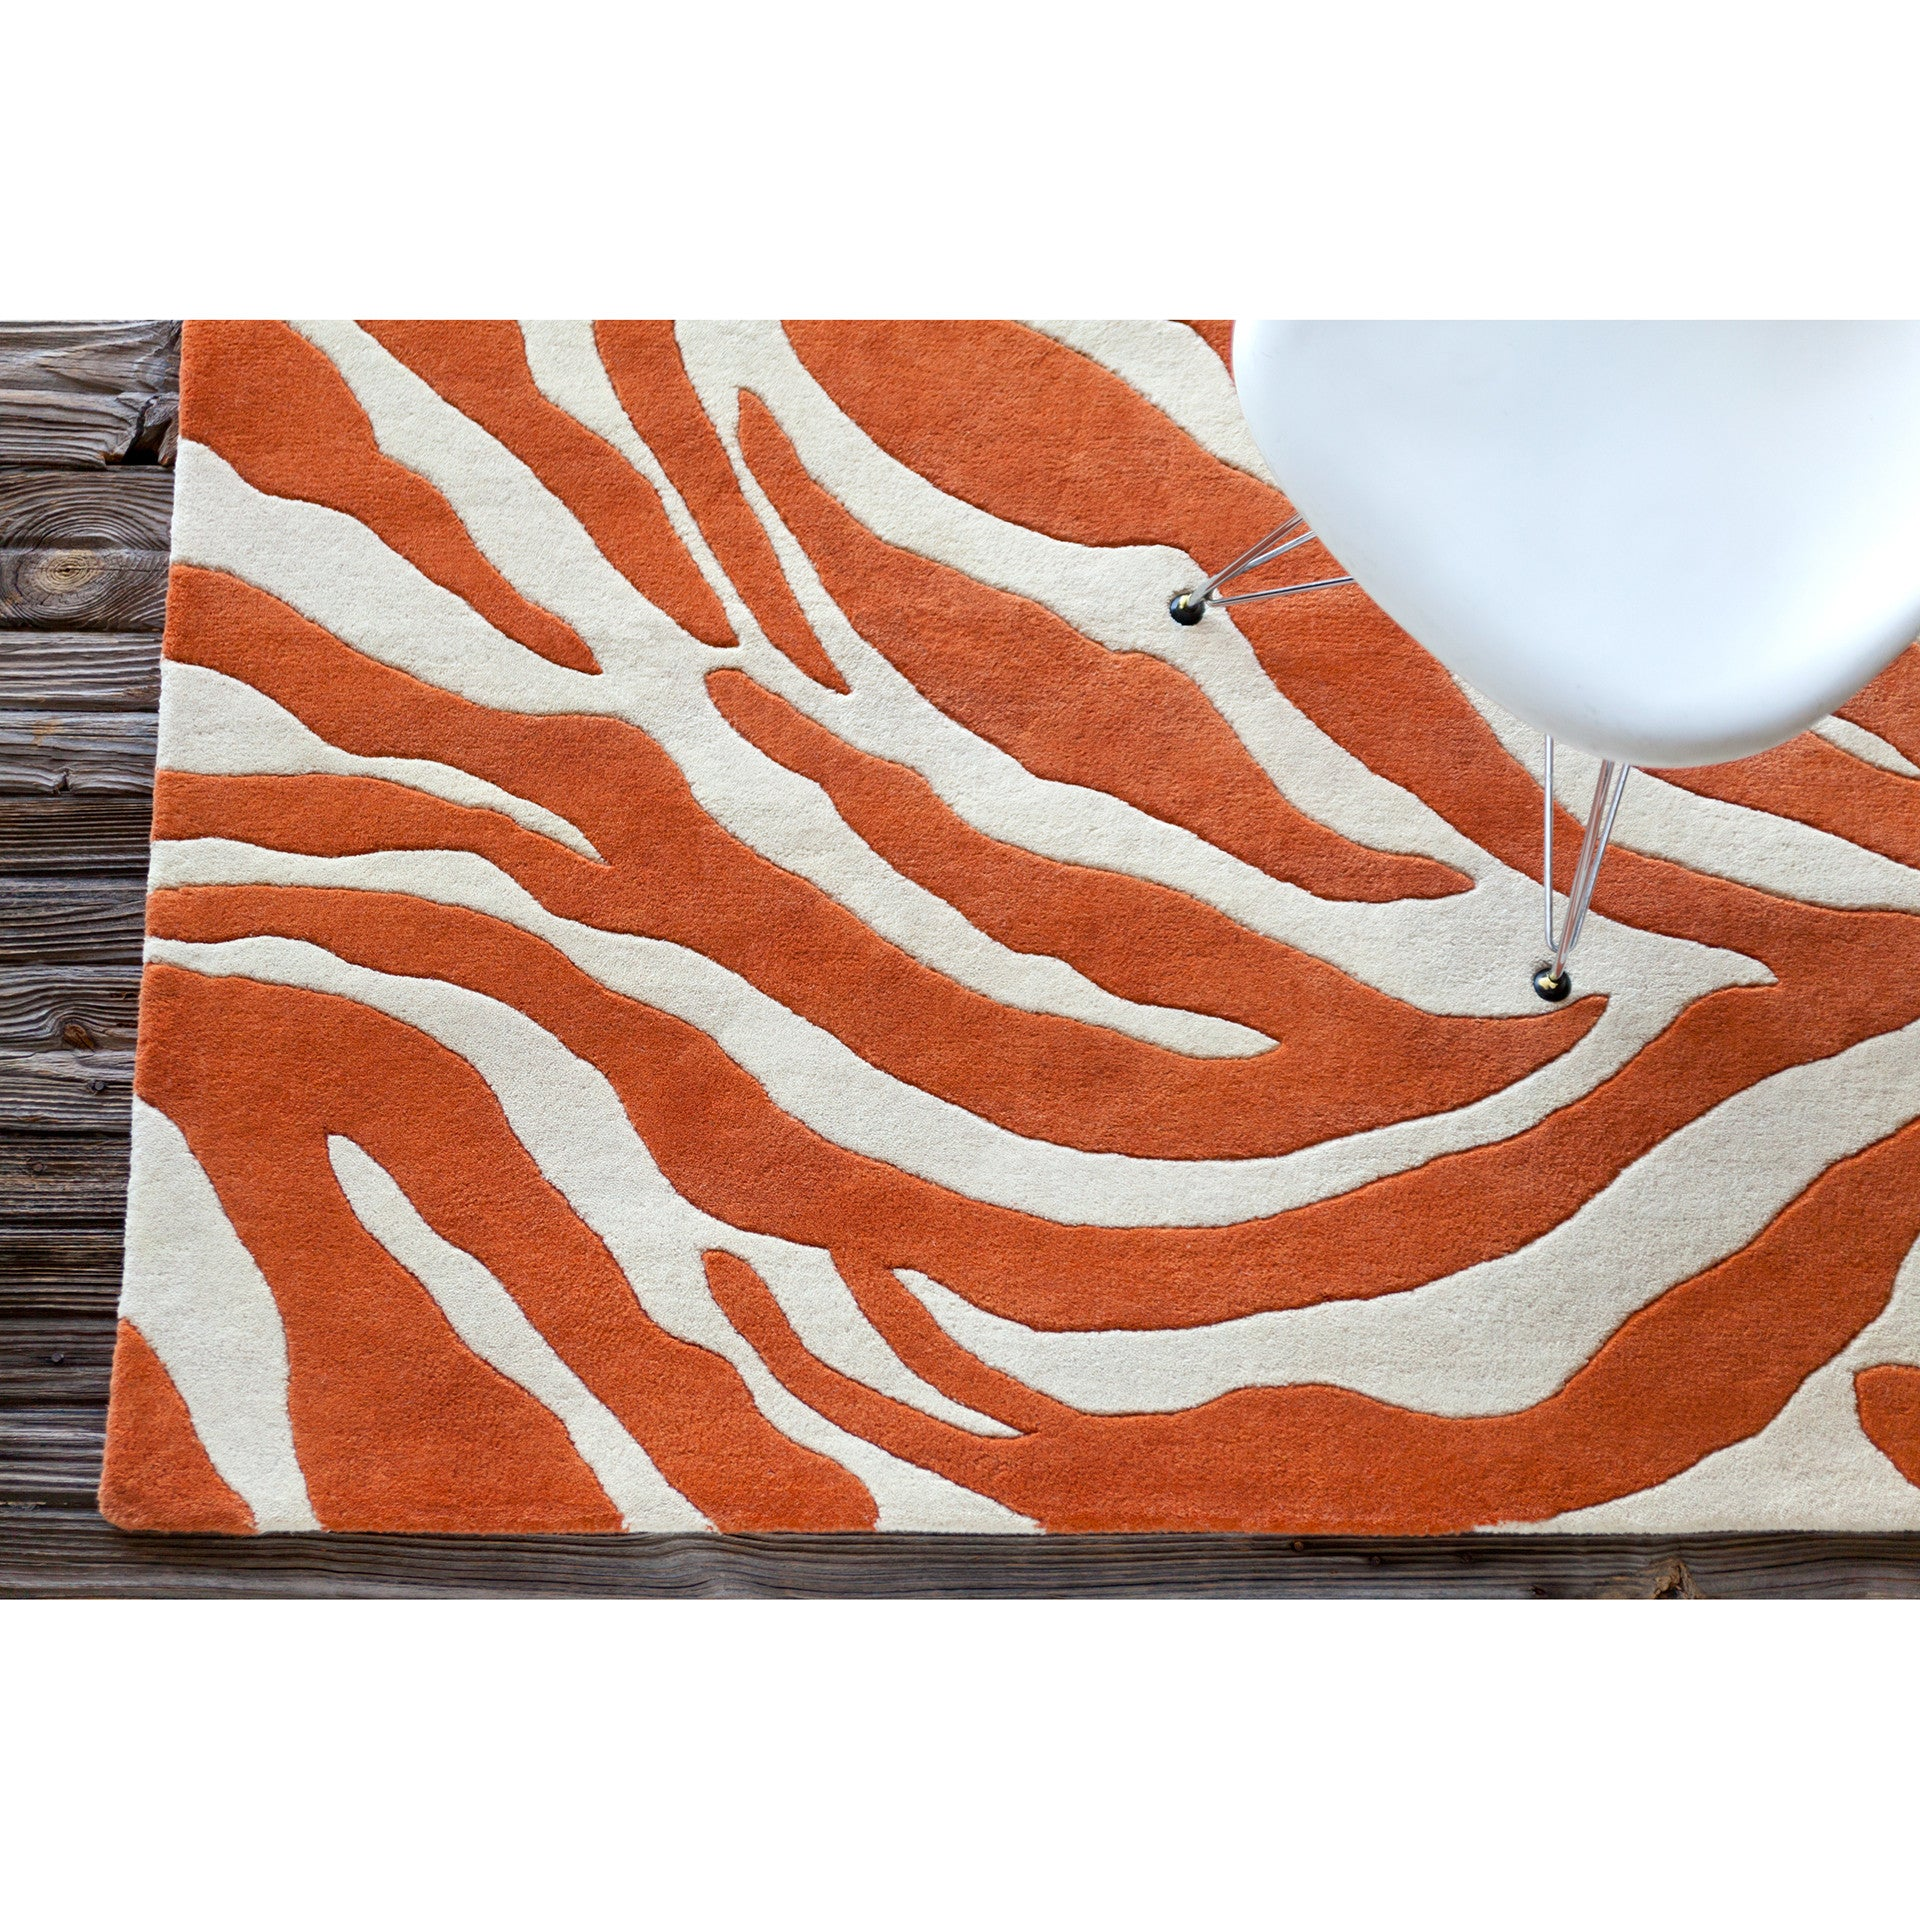 Chandra Stella Patterned Contemporary Wool Beige Aqua Area: Stella Collection Hand-Tufted Area Rug In Orange & White